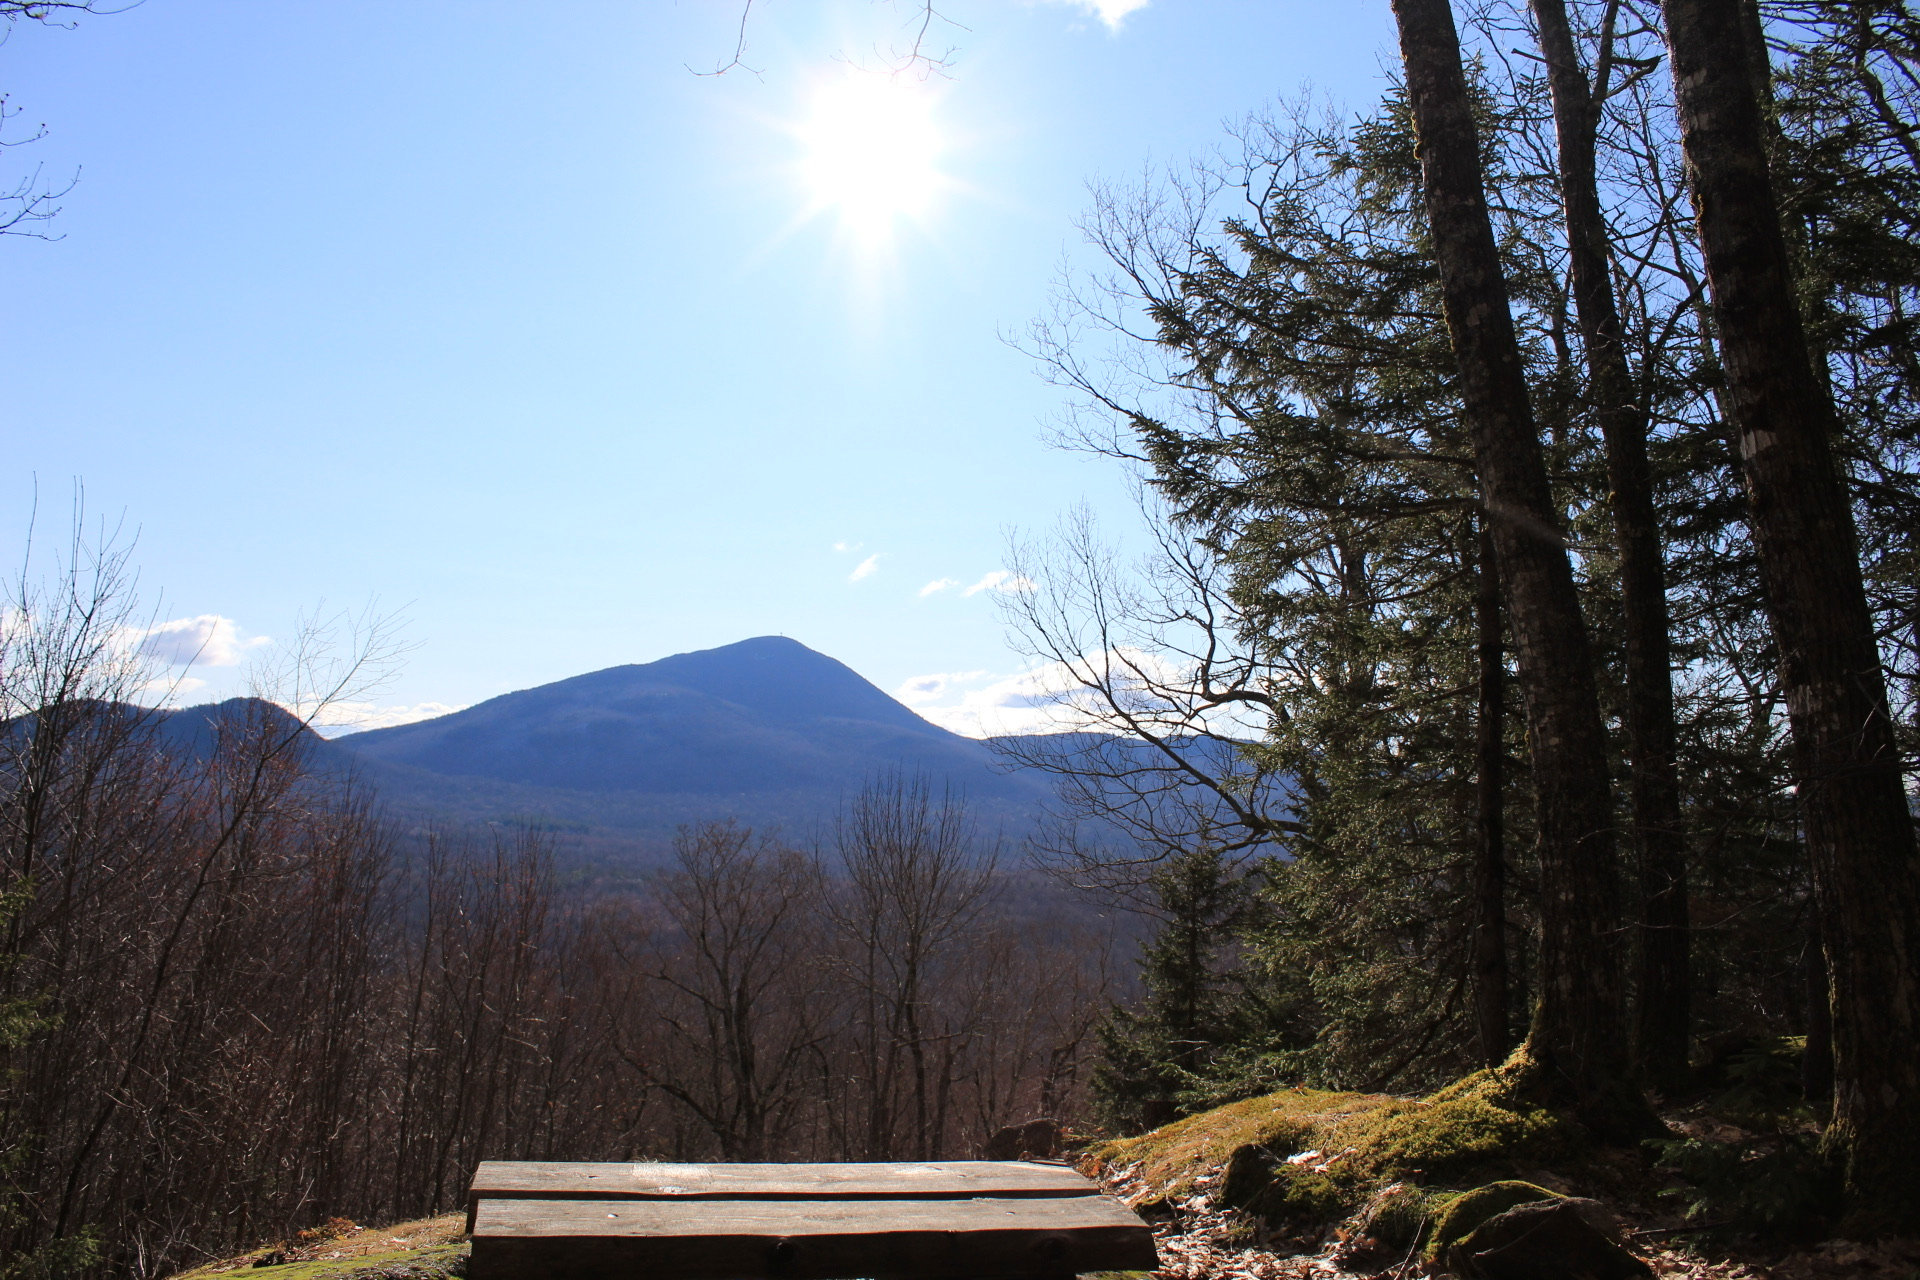 View of Mount Blue's trademark conical summit from Center Hill Nature Trail, Mount Blue State Park, Weld, Maine